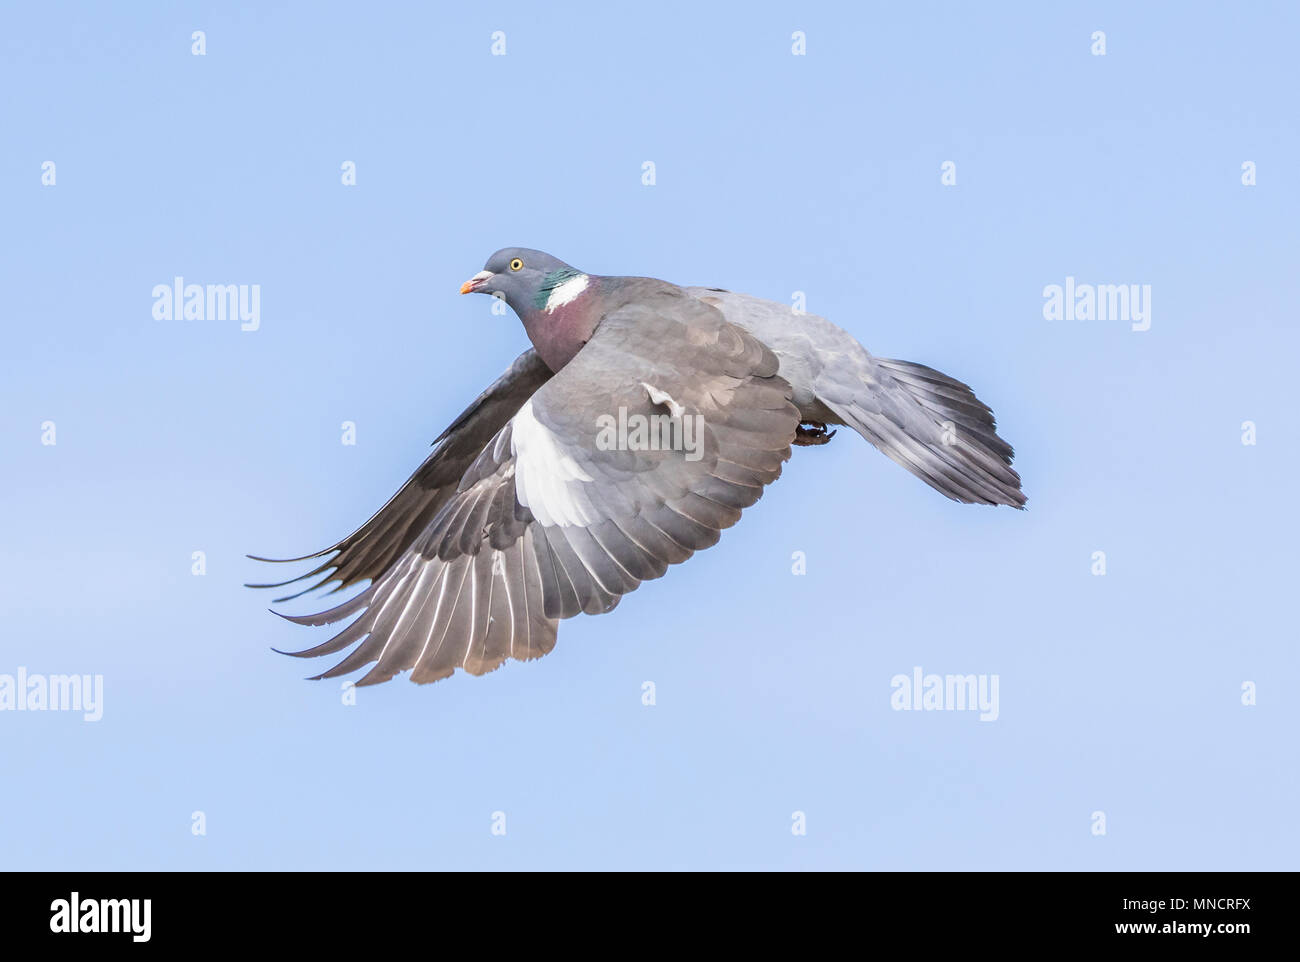 Wood Pigeon (Columba palumbus) with wings down and out, flying in the sky against blue sky in the UK. - Stock Image